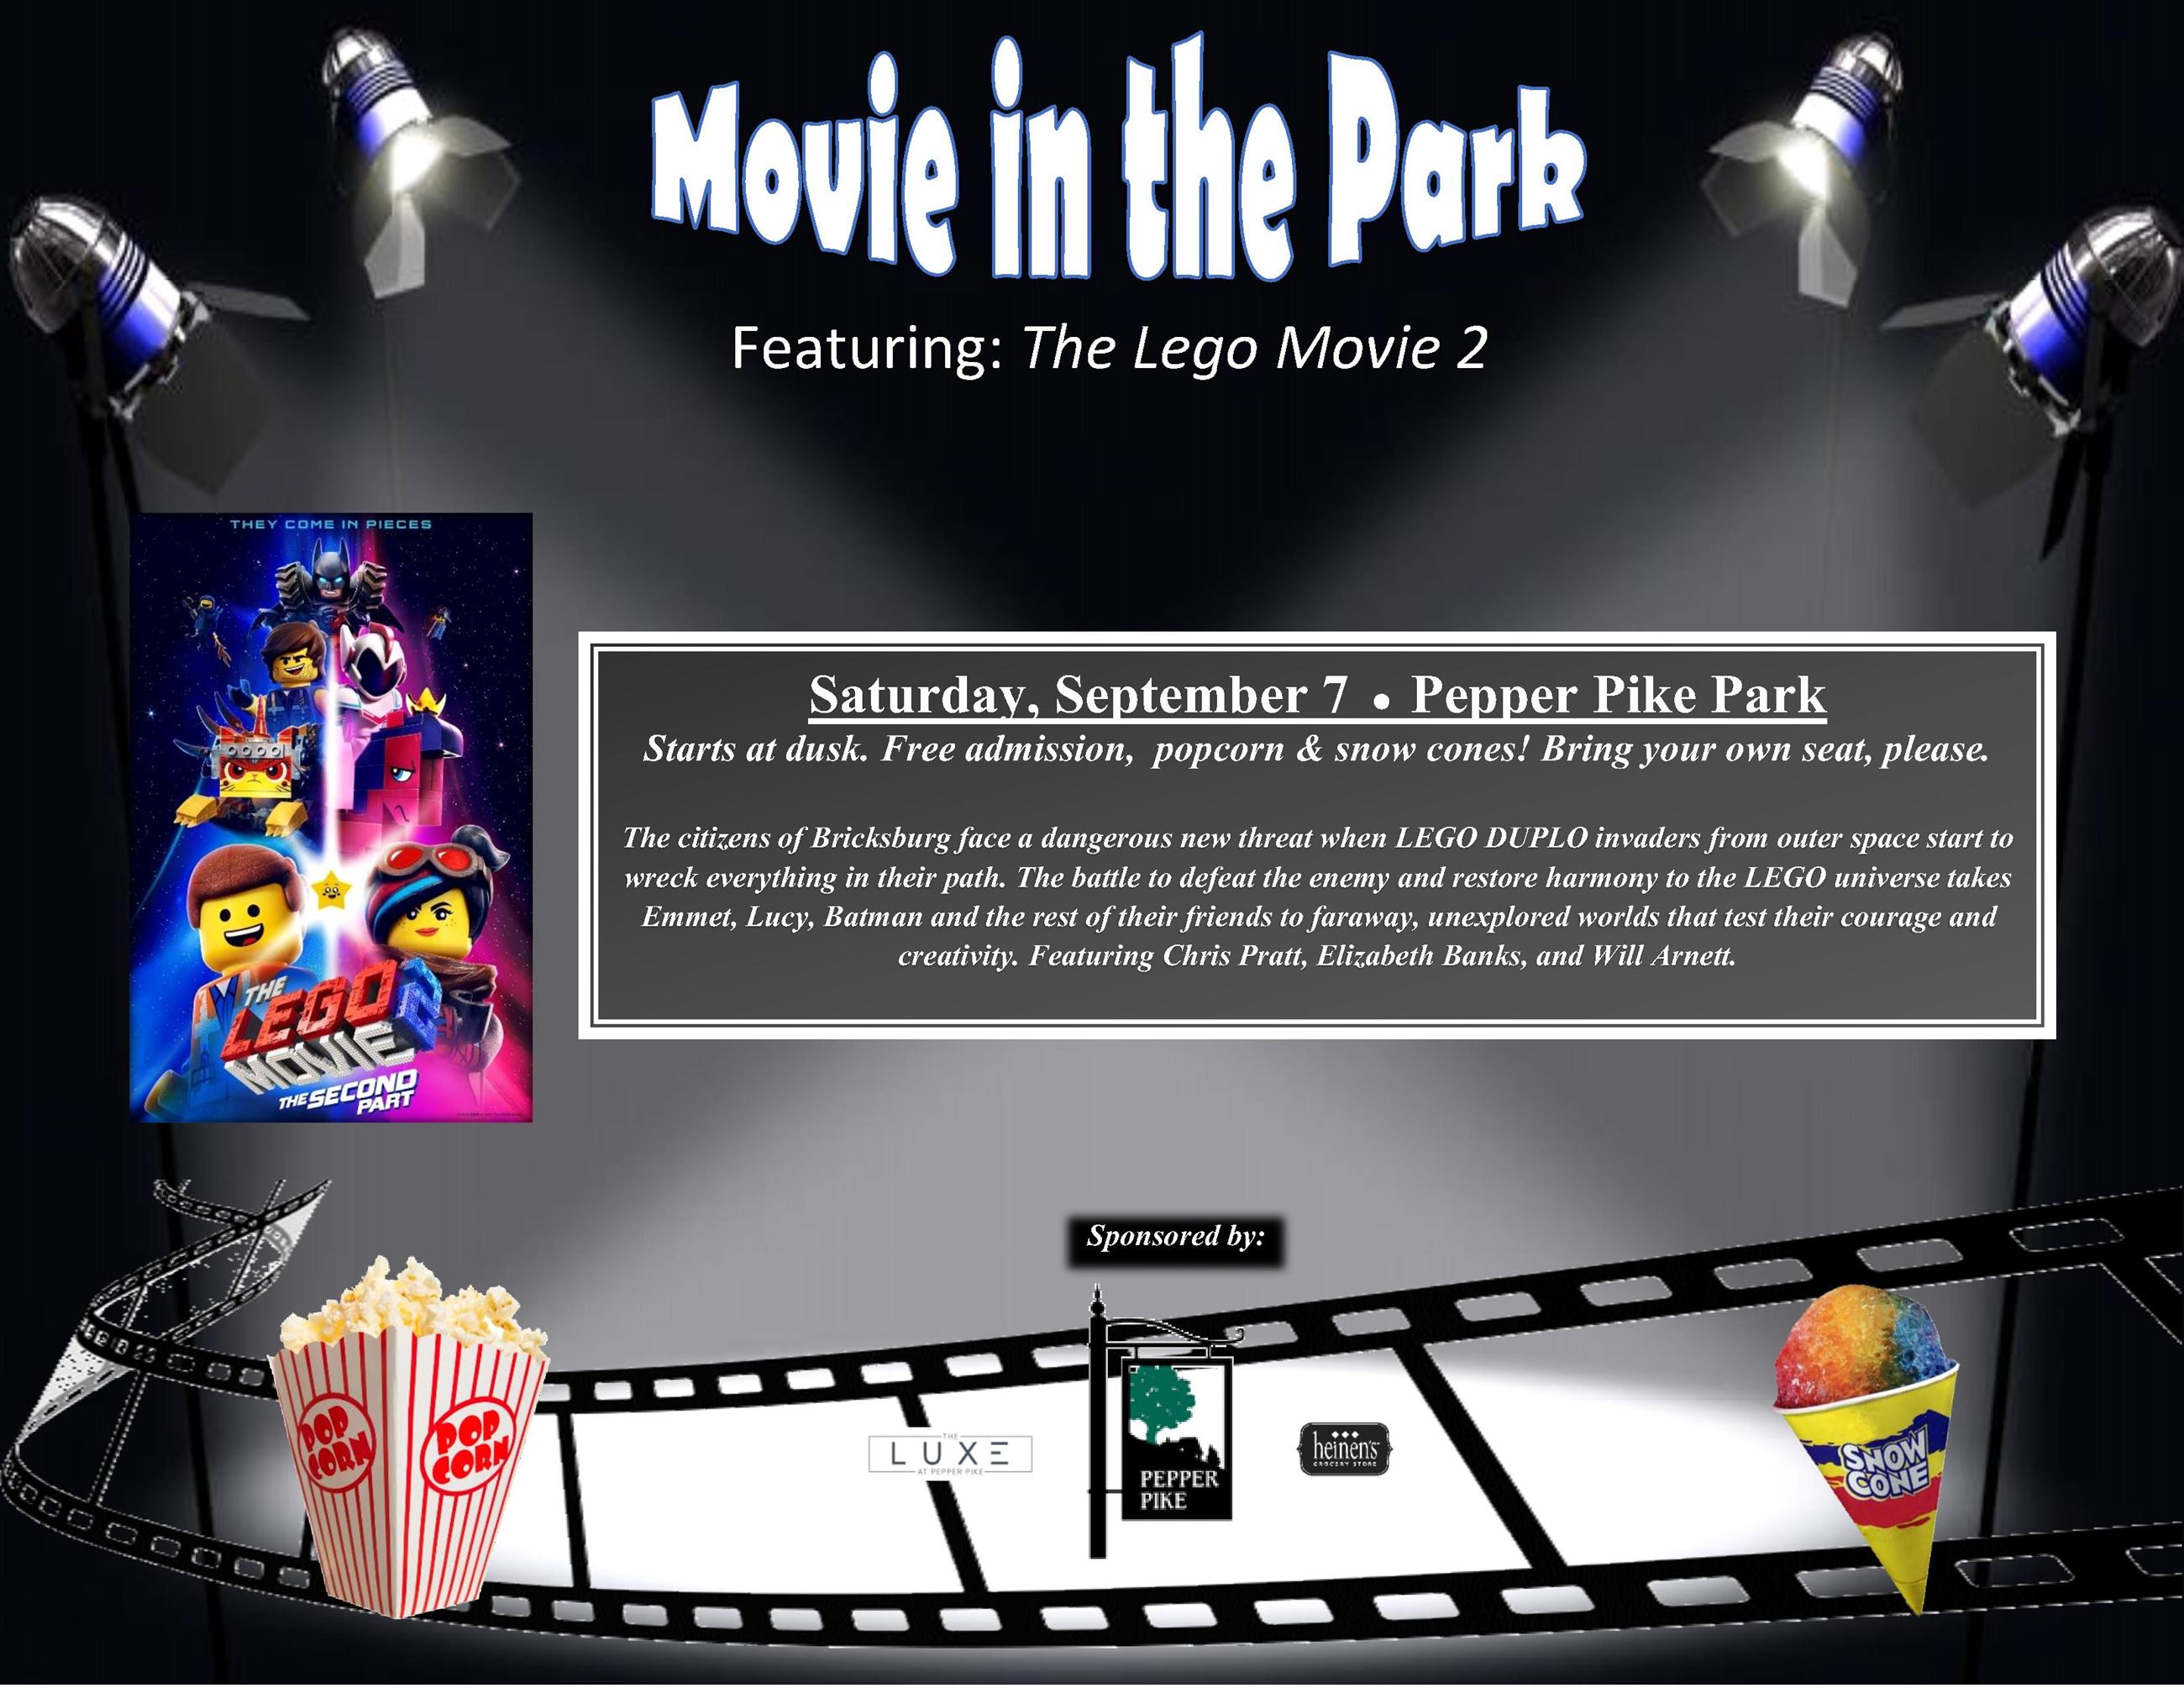 Movies in the Park The Lego Movie 2